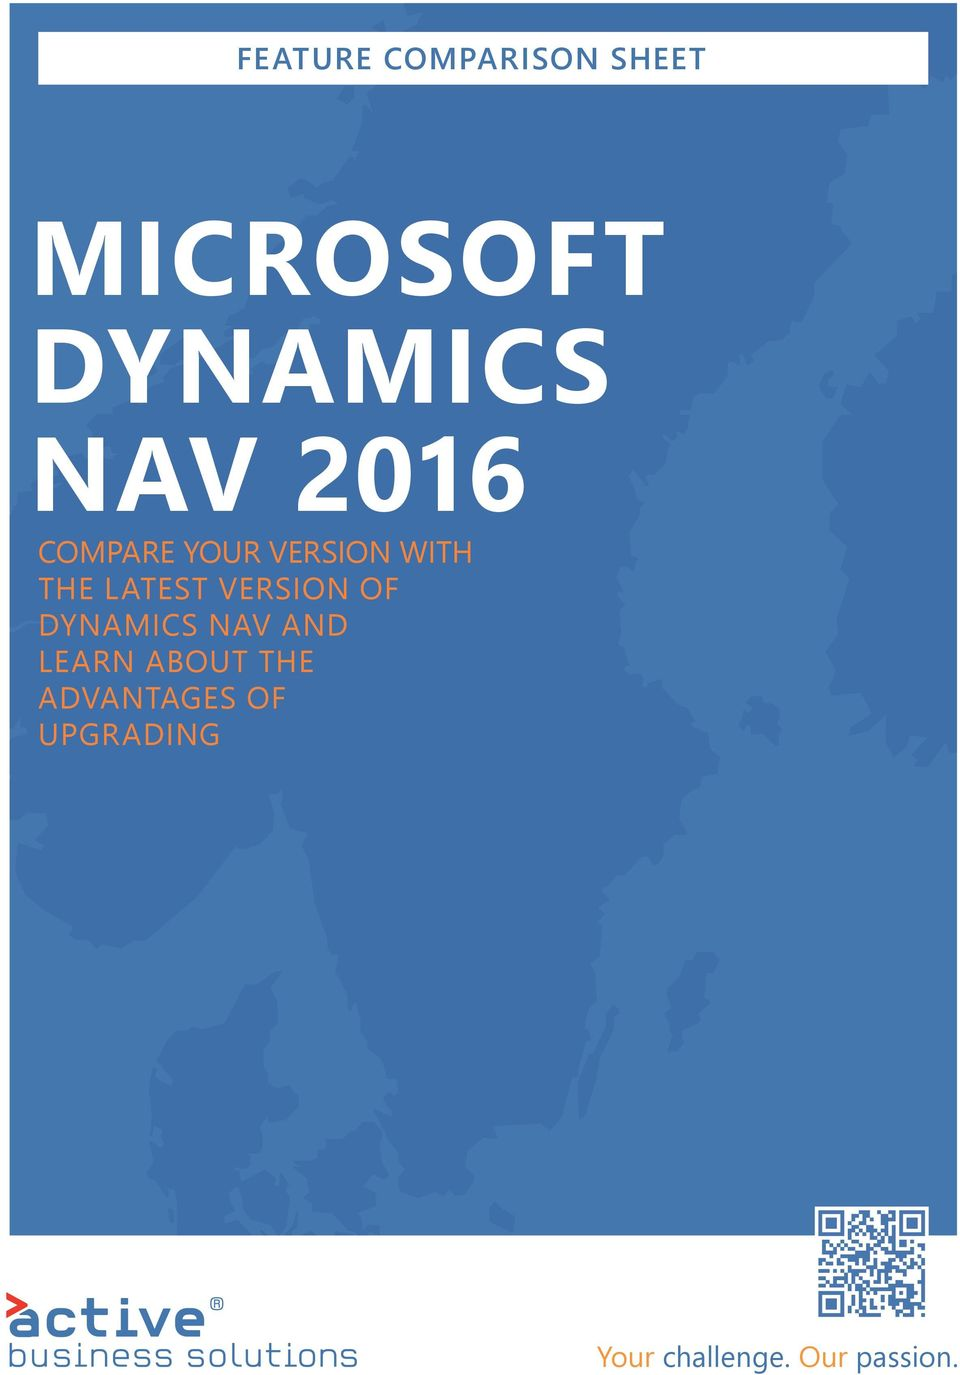 VERSION OF DYNAMICS NAV AND LEARN ABOUT THE